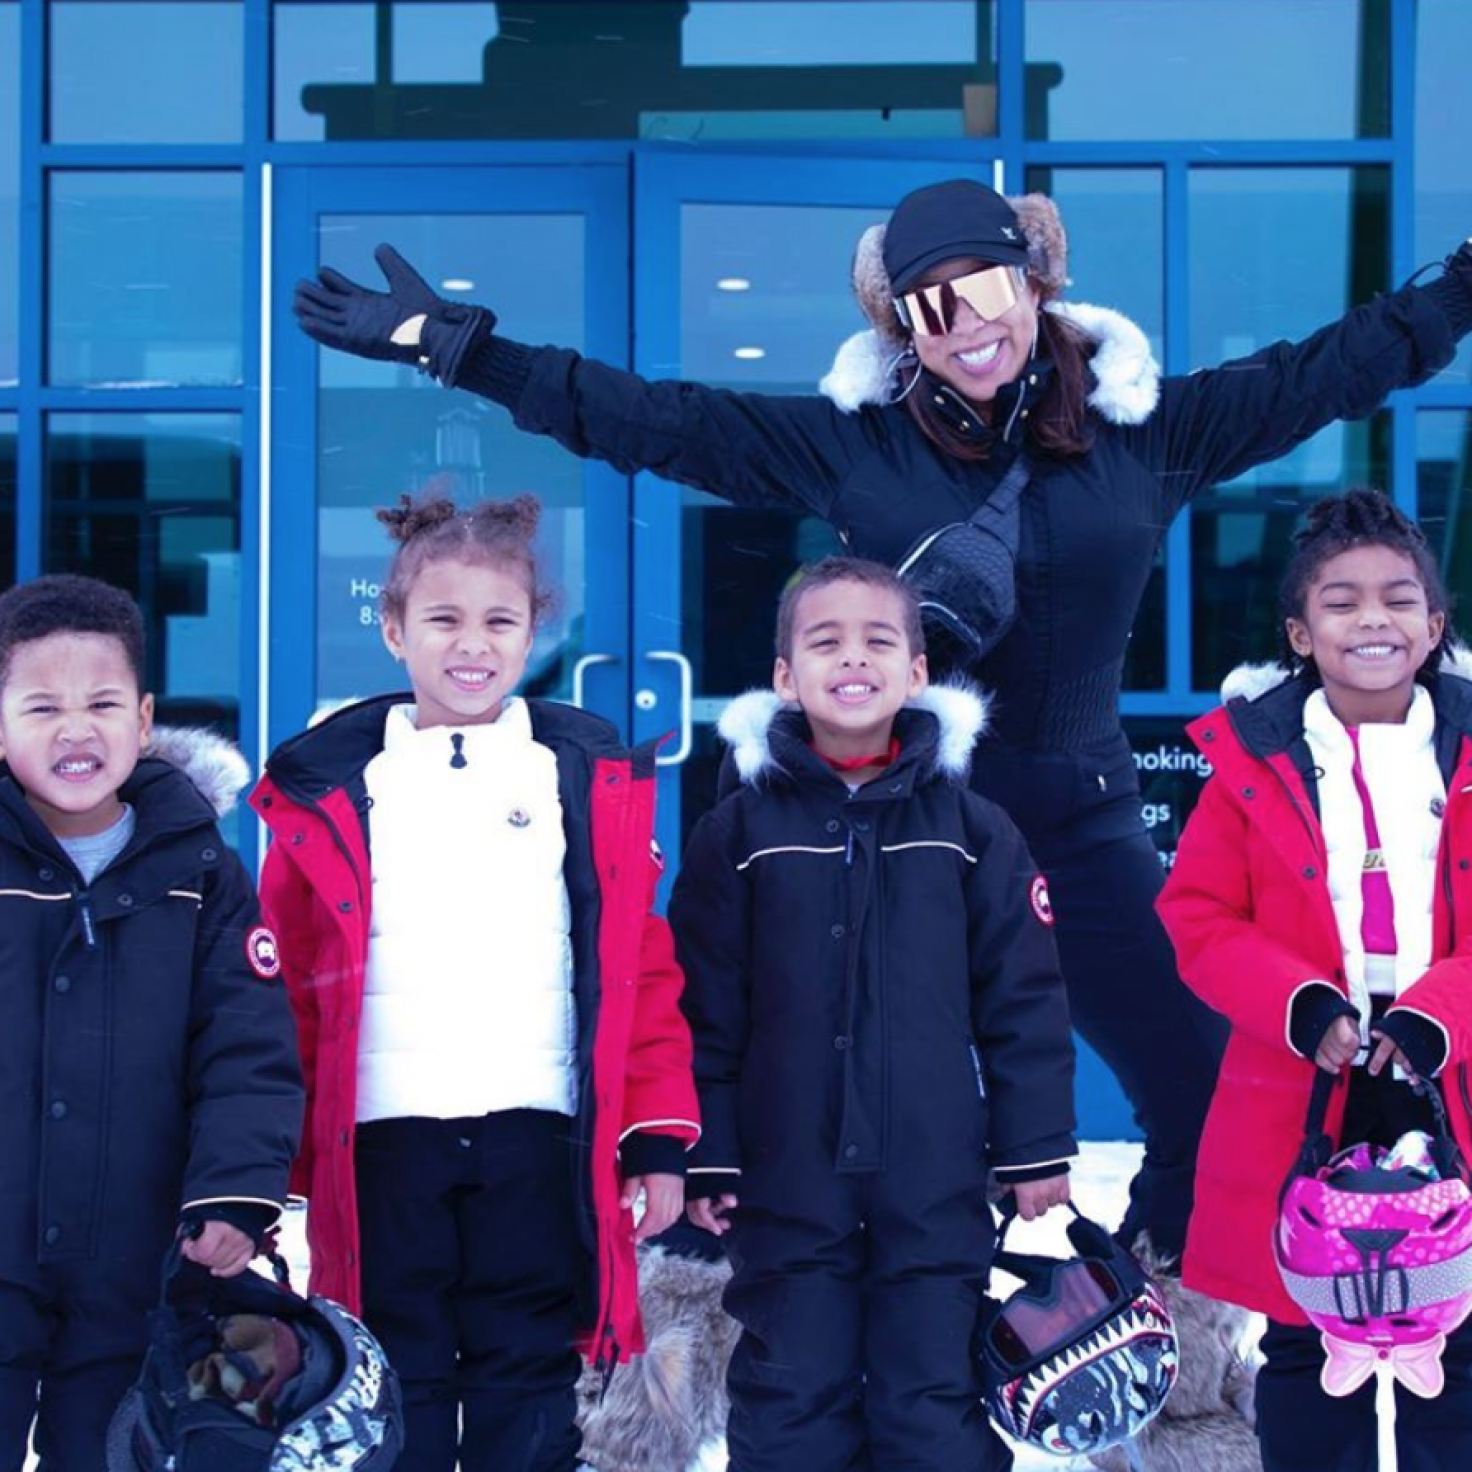 Marjorie Harvey's Glam-Ma Ski Adventure With Her Grandkids Is Cuteness Overload